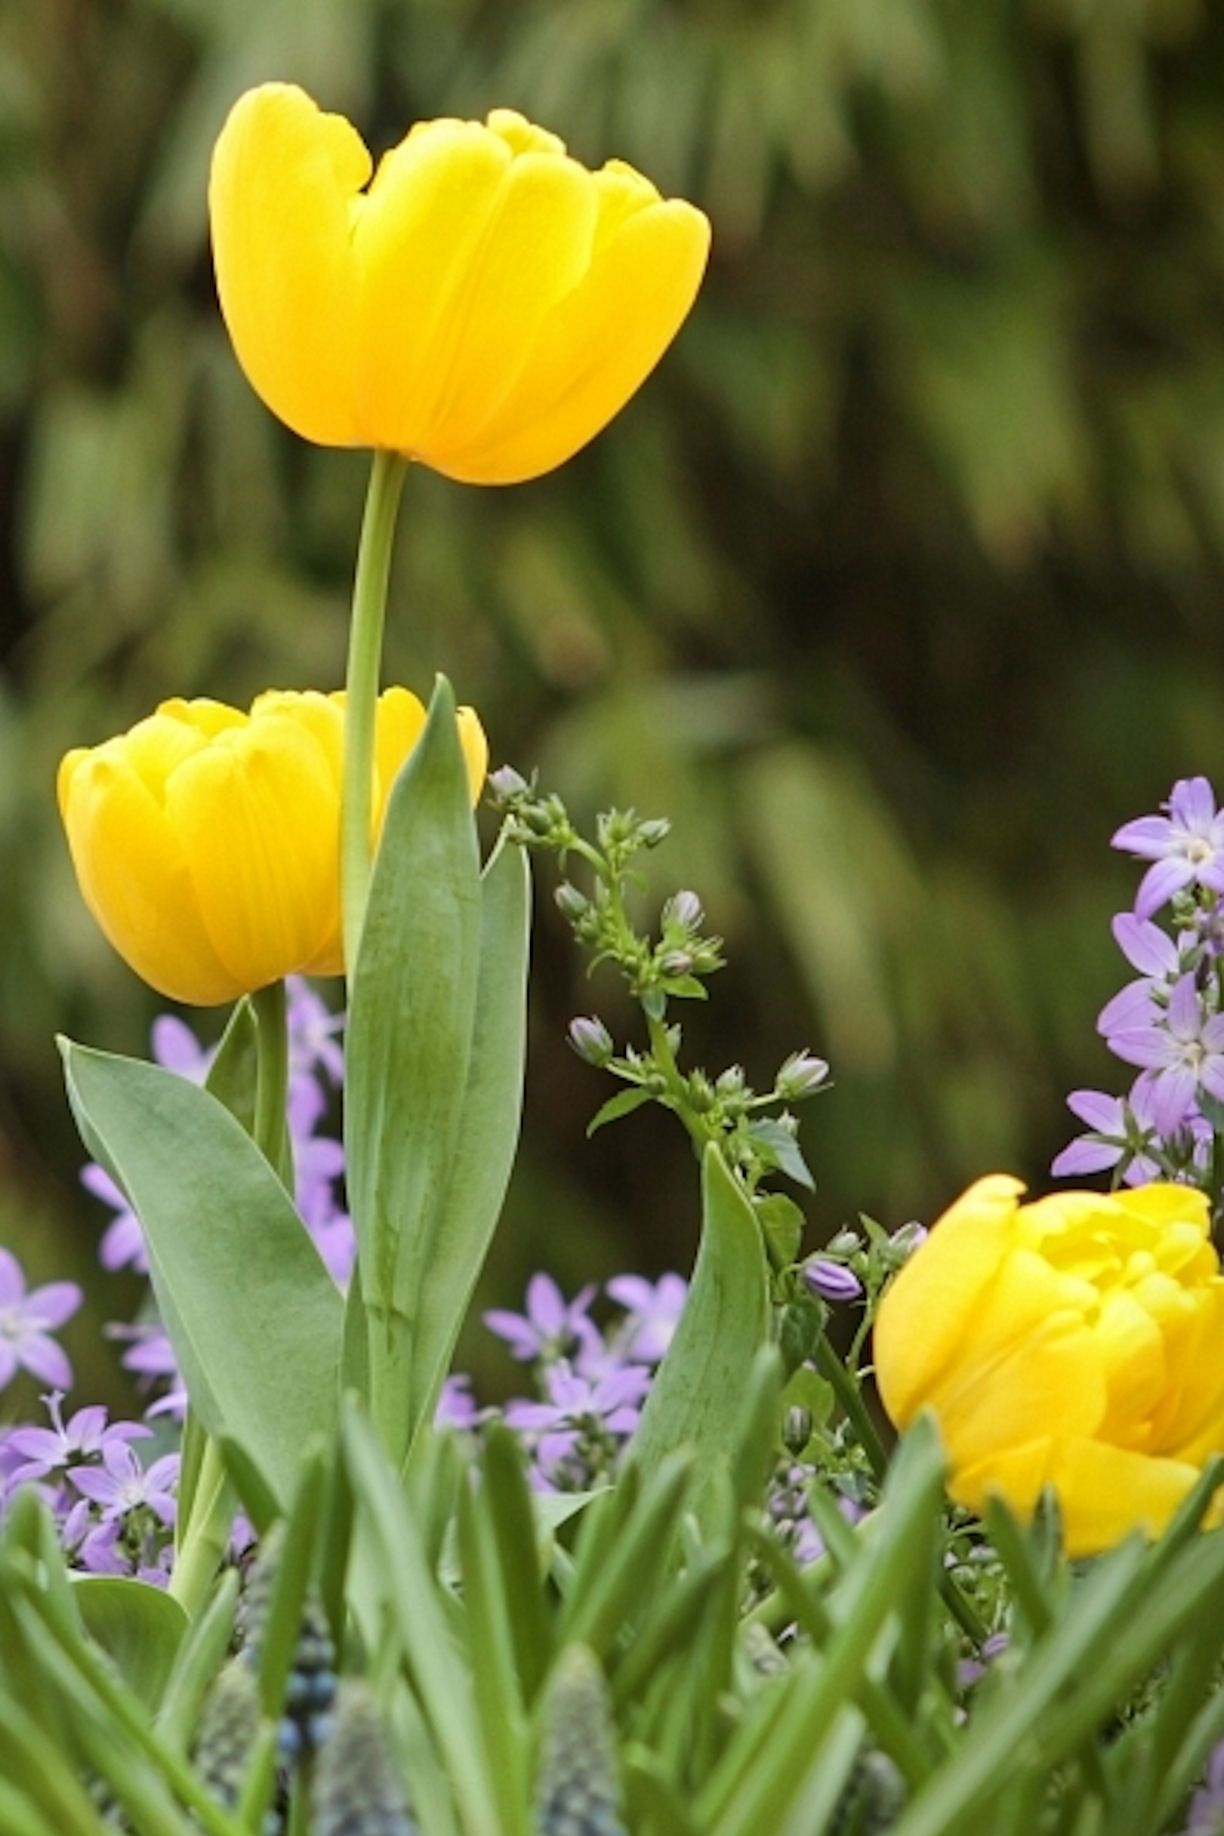 Yellow Tulips hopeless love (With images) Yellow